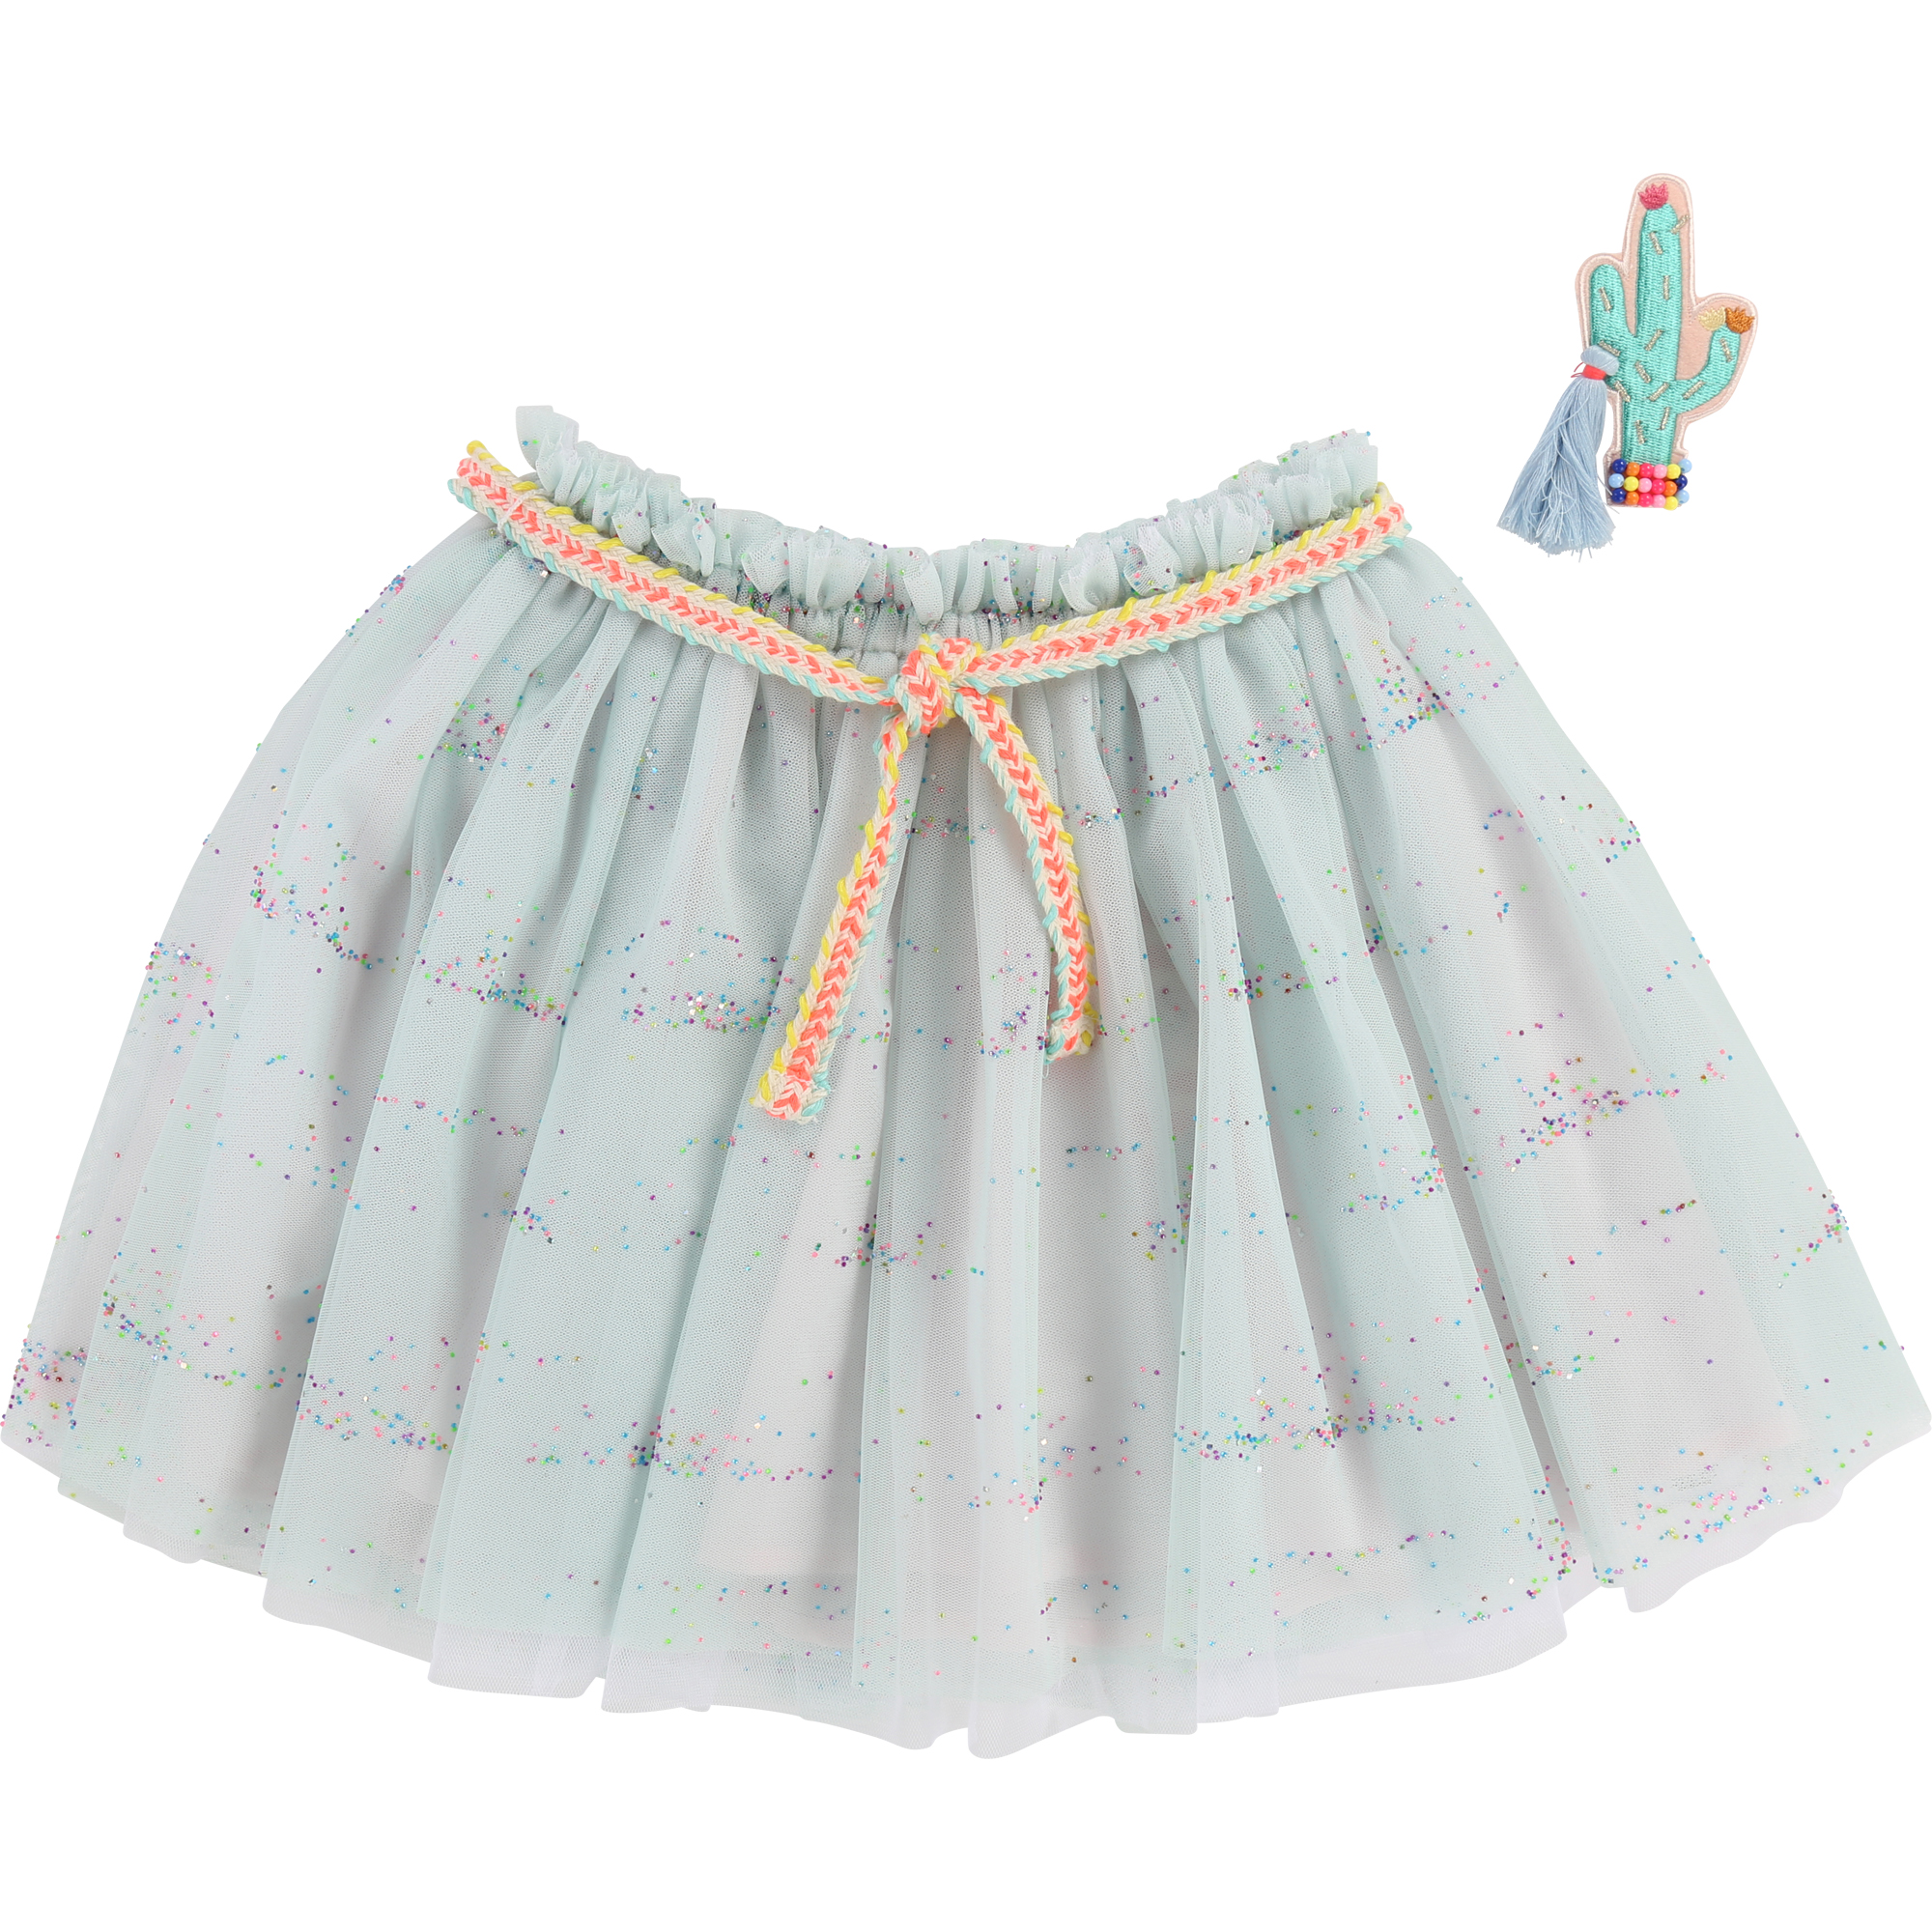 Billieblush  - PARTY UNIQUE BALLET SKIRT - Clothing